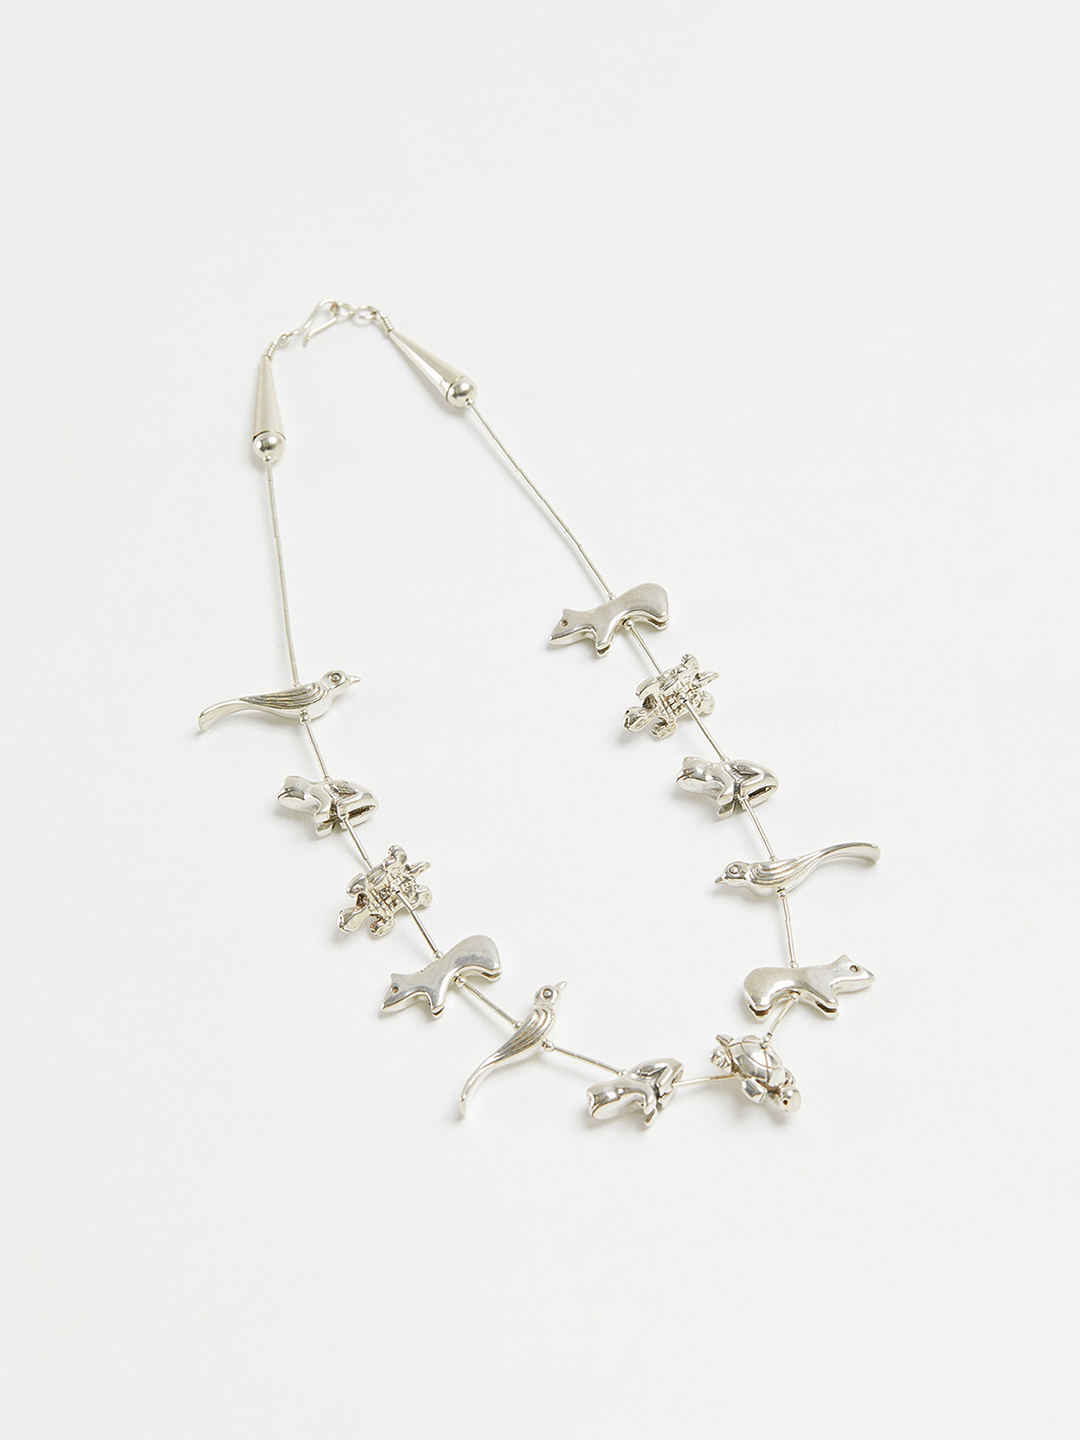 Animal Fetish Necklace - 42cm 12pcs Silver